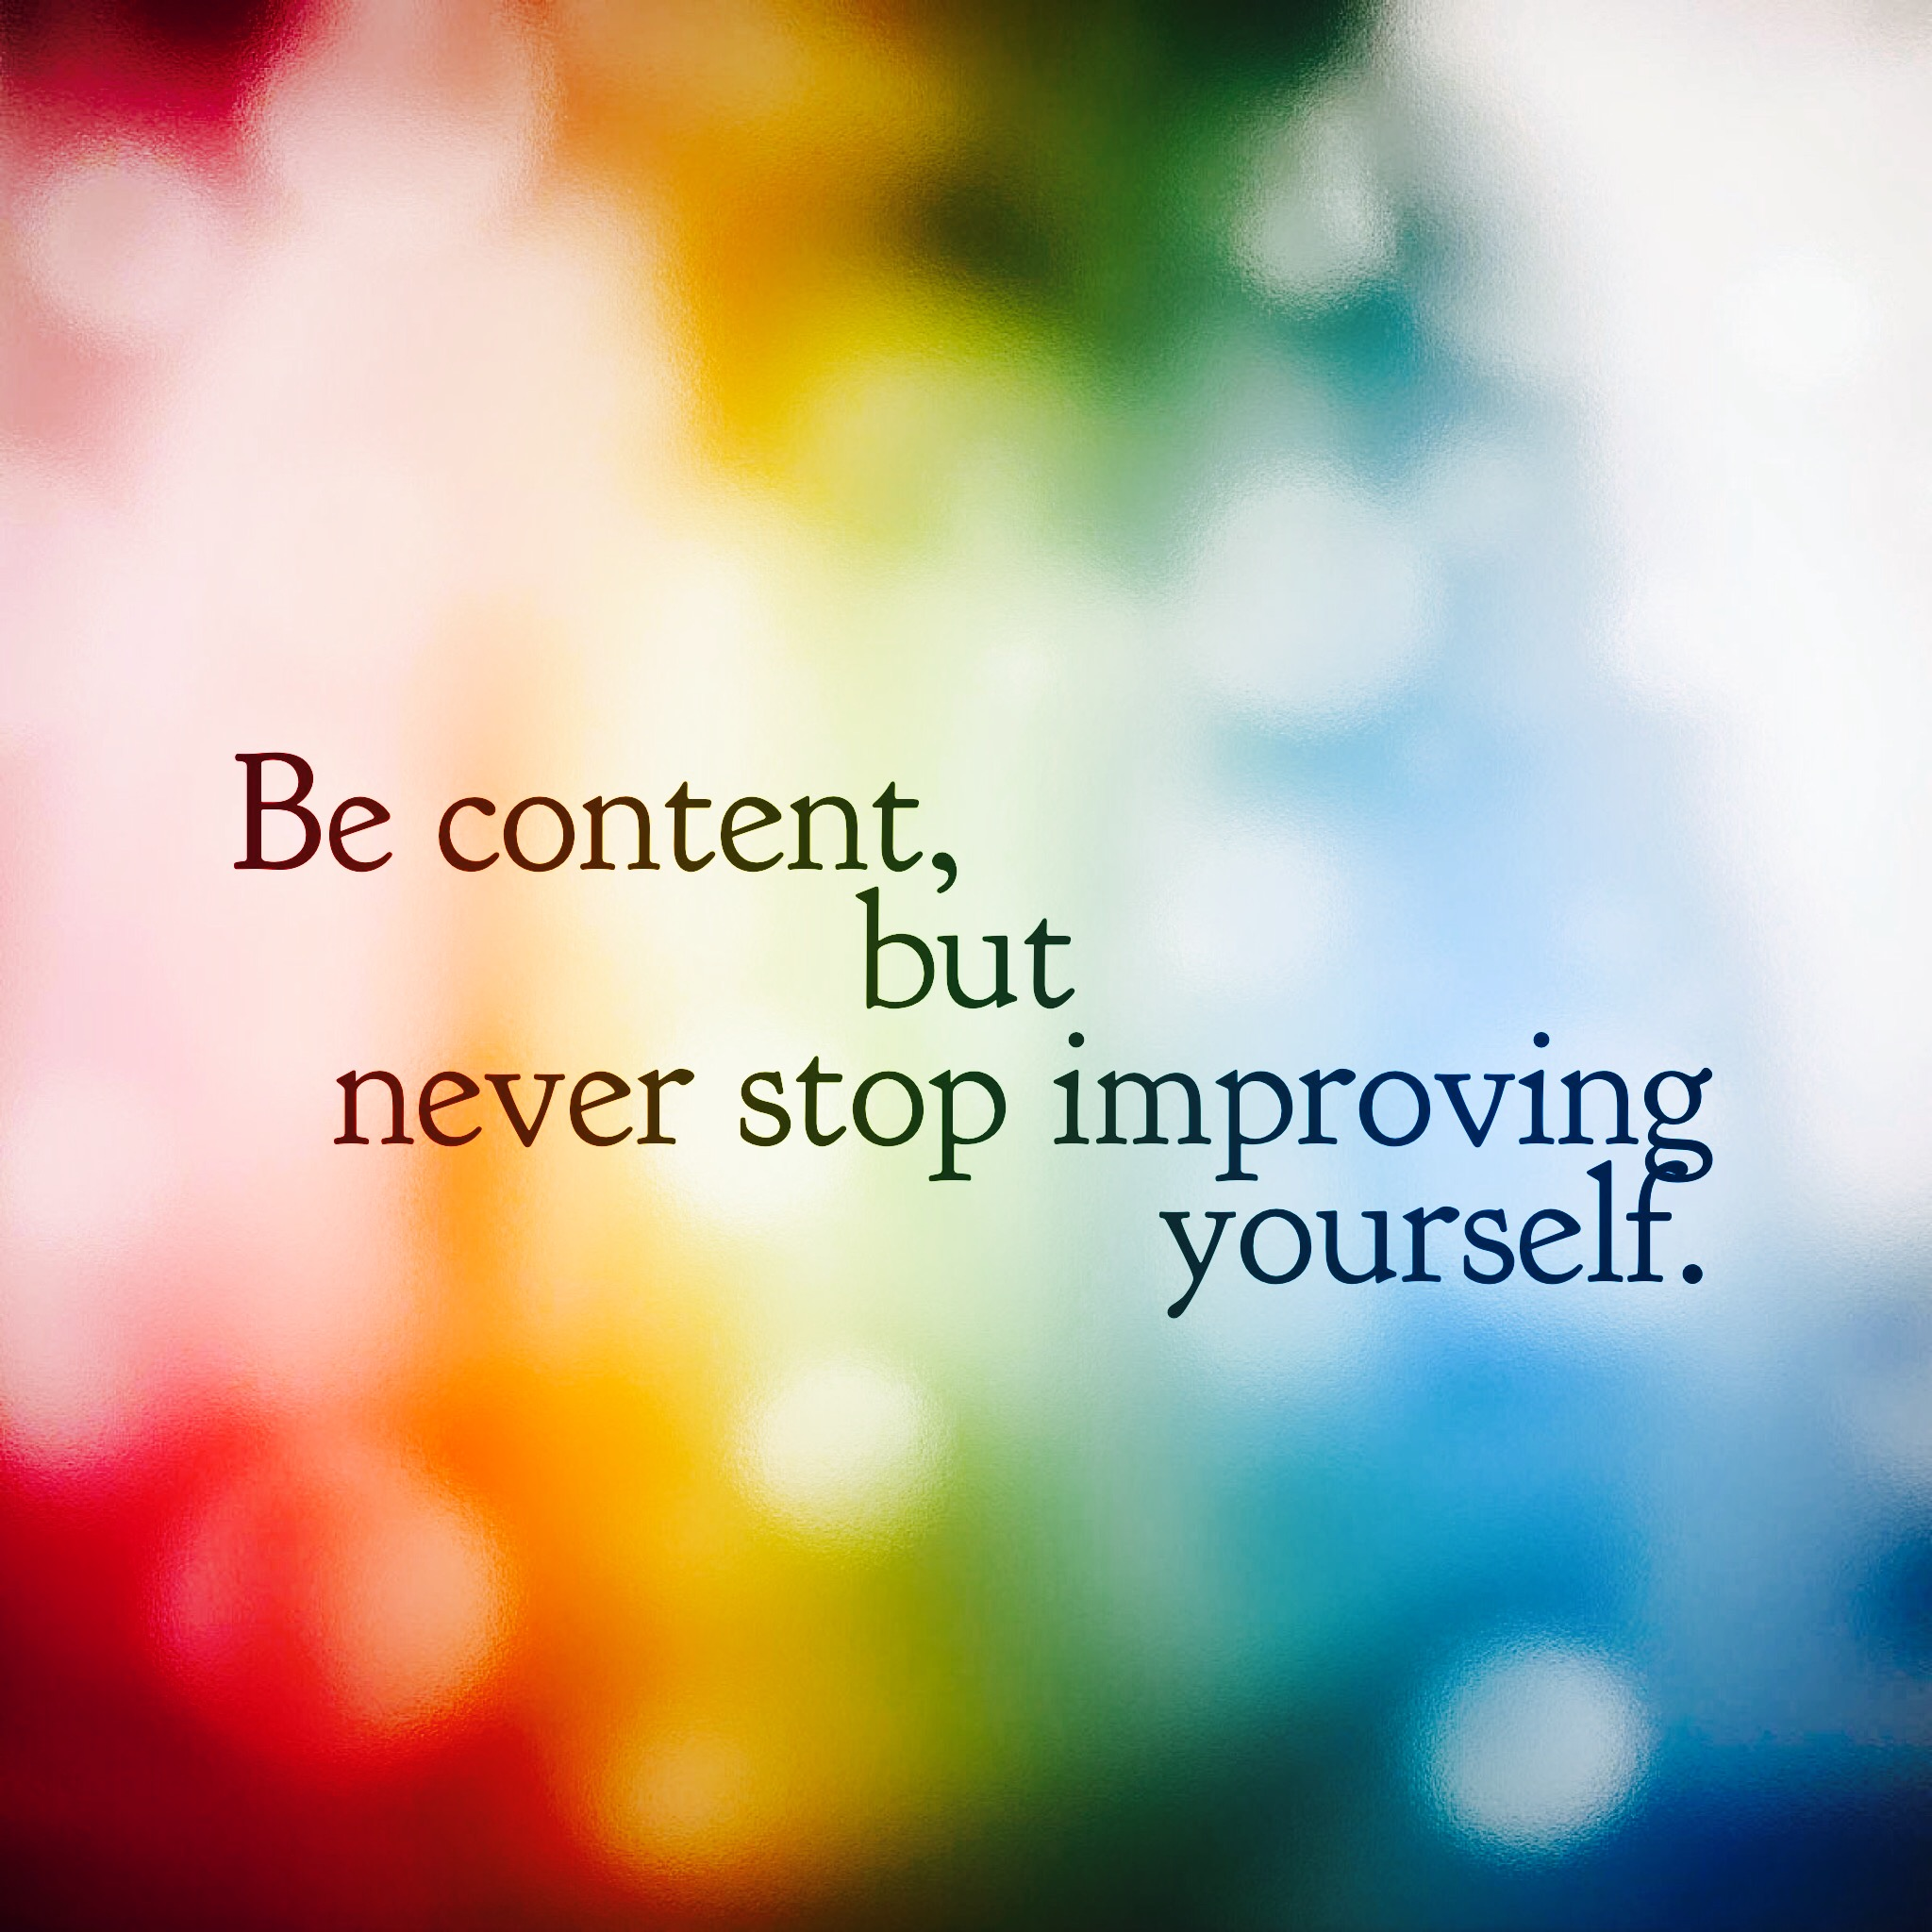 Inspirational Quotes About Improving Yourself Quotesgram: Improve It Quotes. QuotesGram